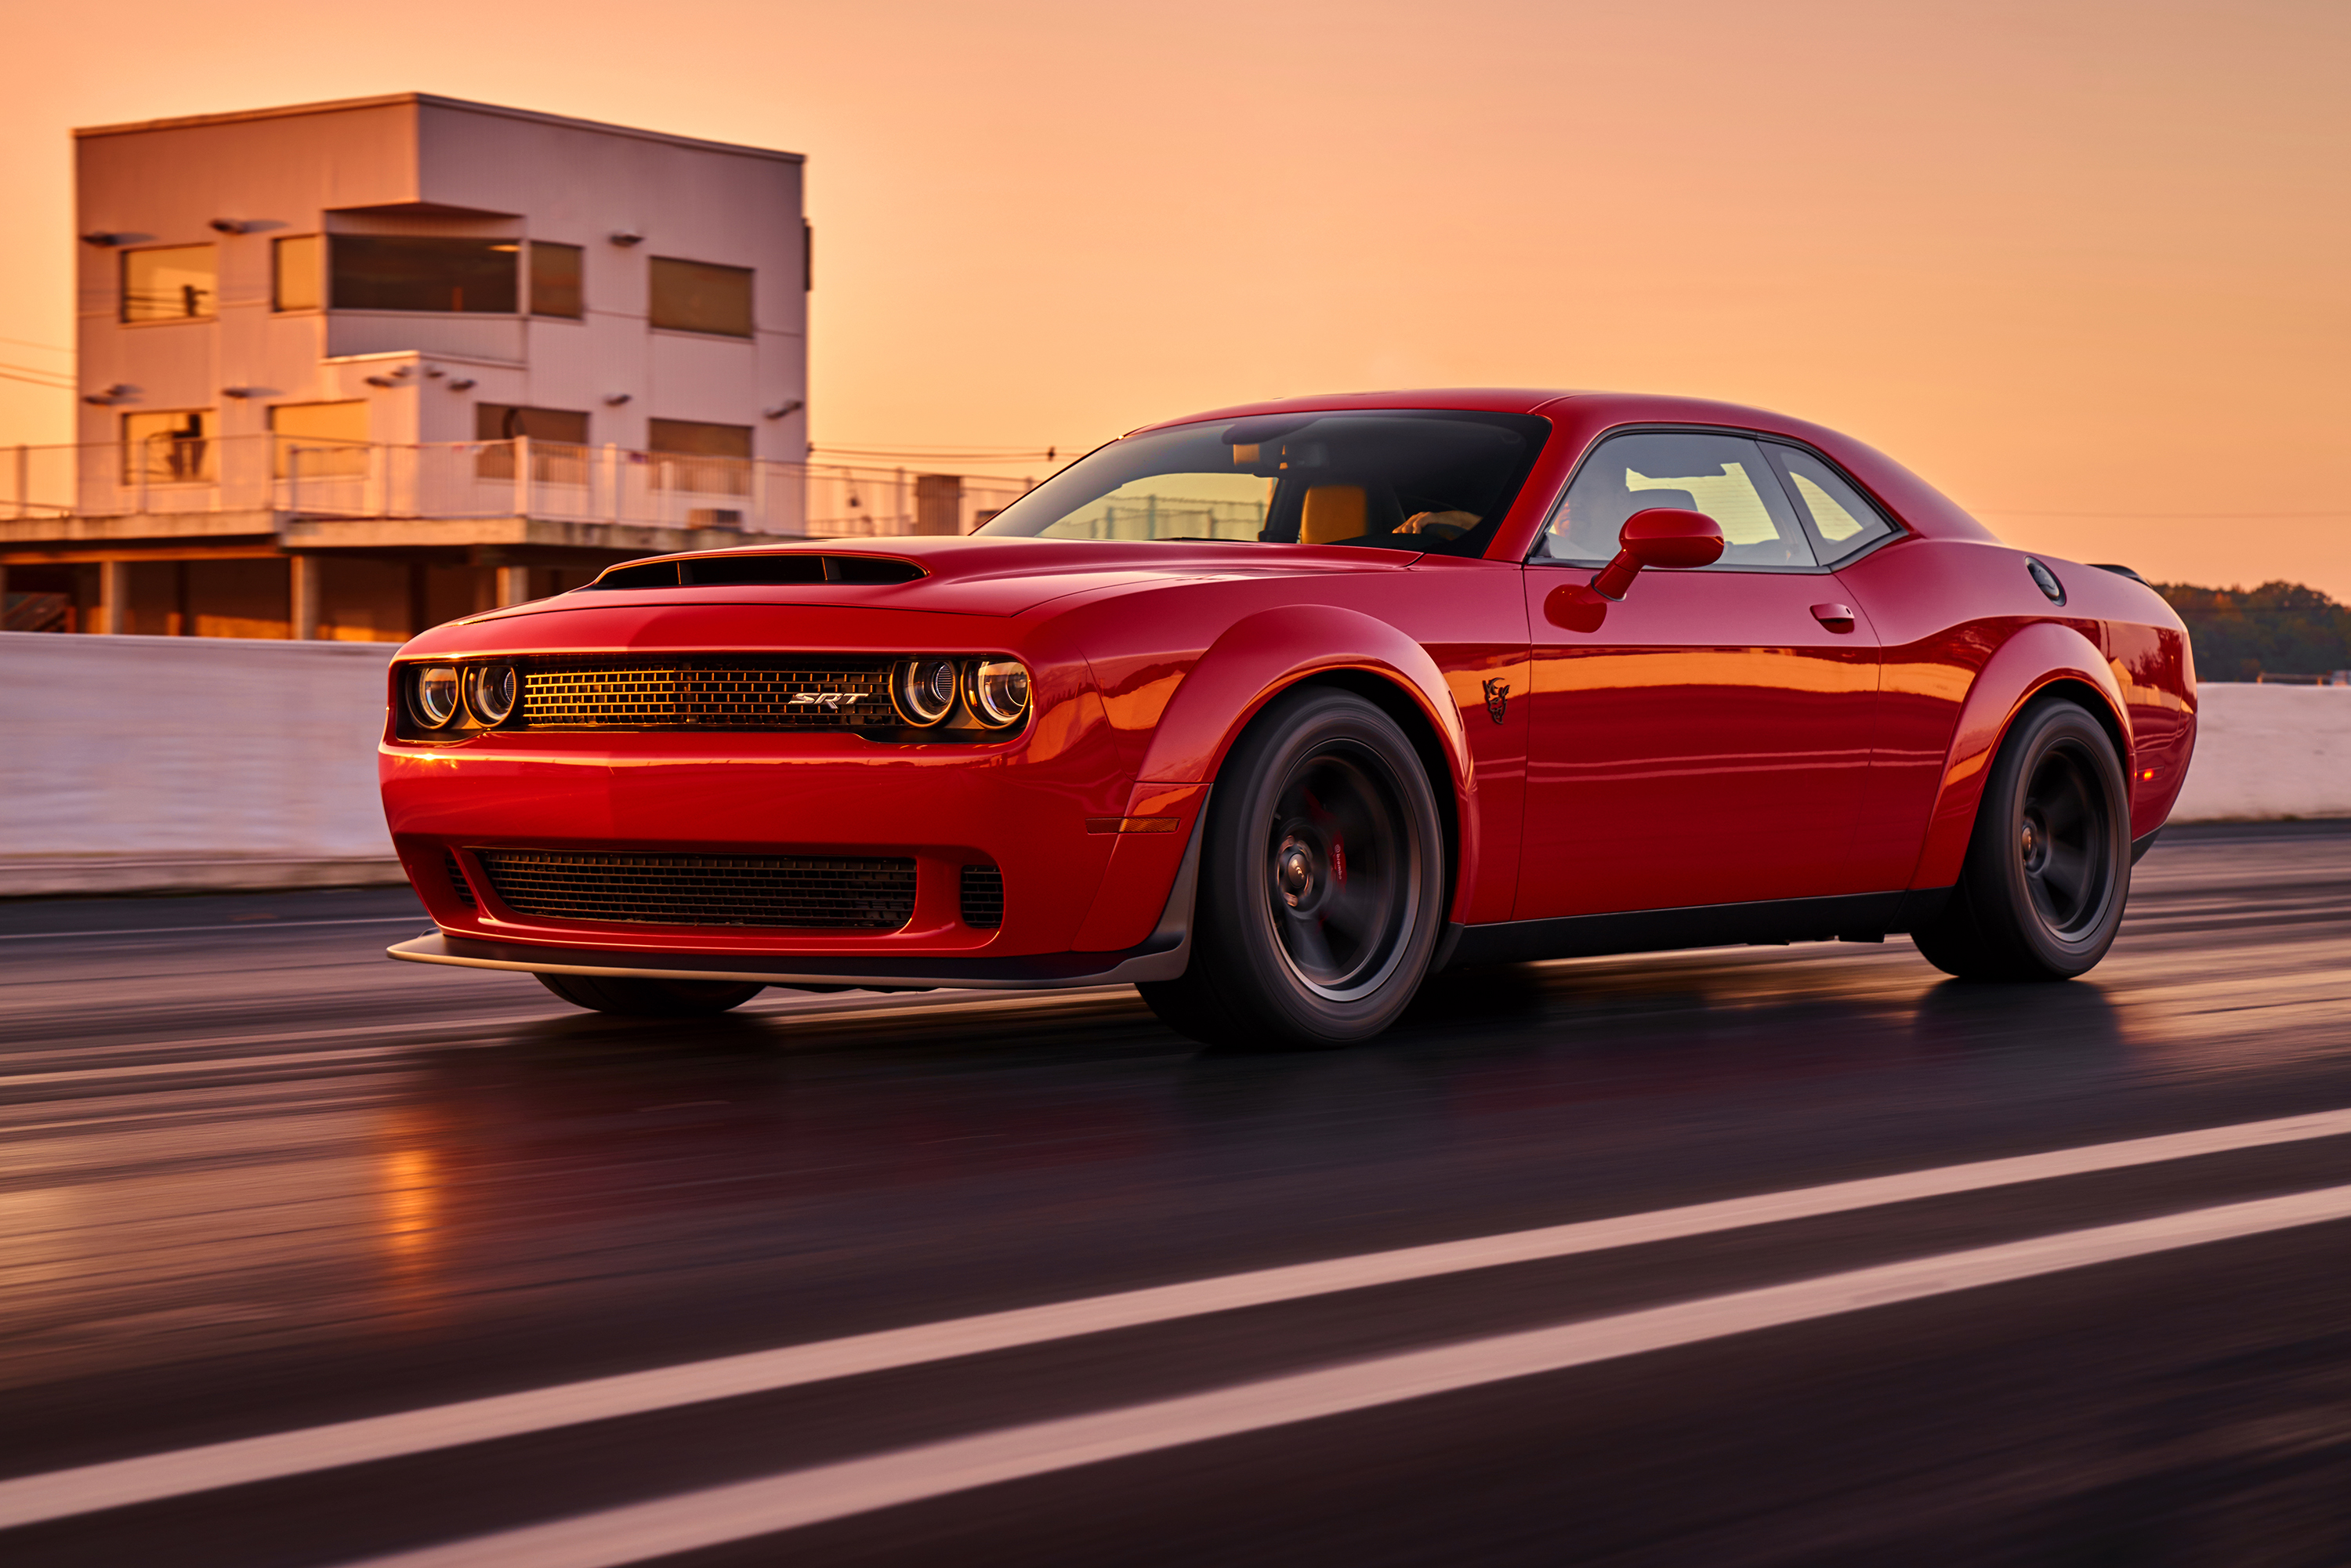 Dodge Challenger Srt Demon 233 O Carro De Produ 231 227 O Mais